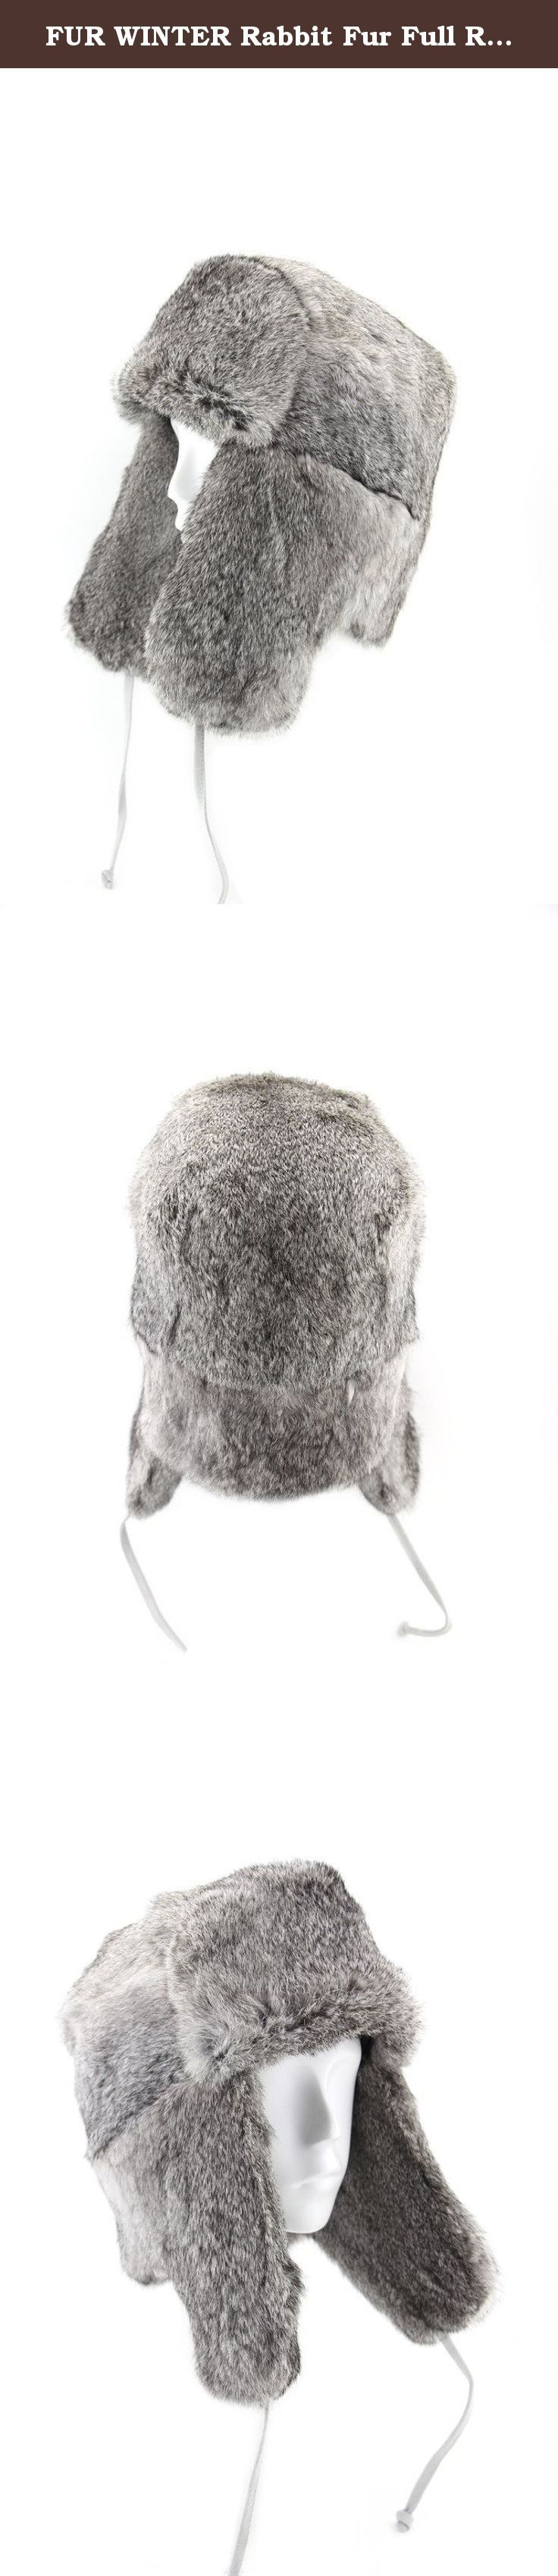 FUR WINTER Rabbit Fur Full Russian Ushanka Soviet Army Military Soldier Hat GRY M. FUR WINTER Full Russian Hat, we put our half century professional and built our reputation on these hats which are designed for warmth and style. This FUR WINTER Rabbit Fur Full Russian Hat offers high quality with stylish design based on classic model. It was made by season rabbit fur on both sides; it not only keeps your head warm and comfortable in cold winter, but does also make you fashionable and...